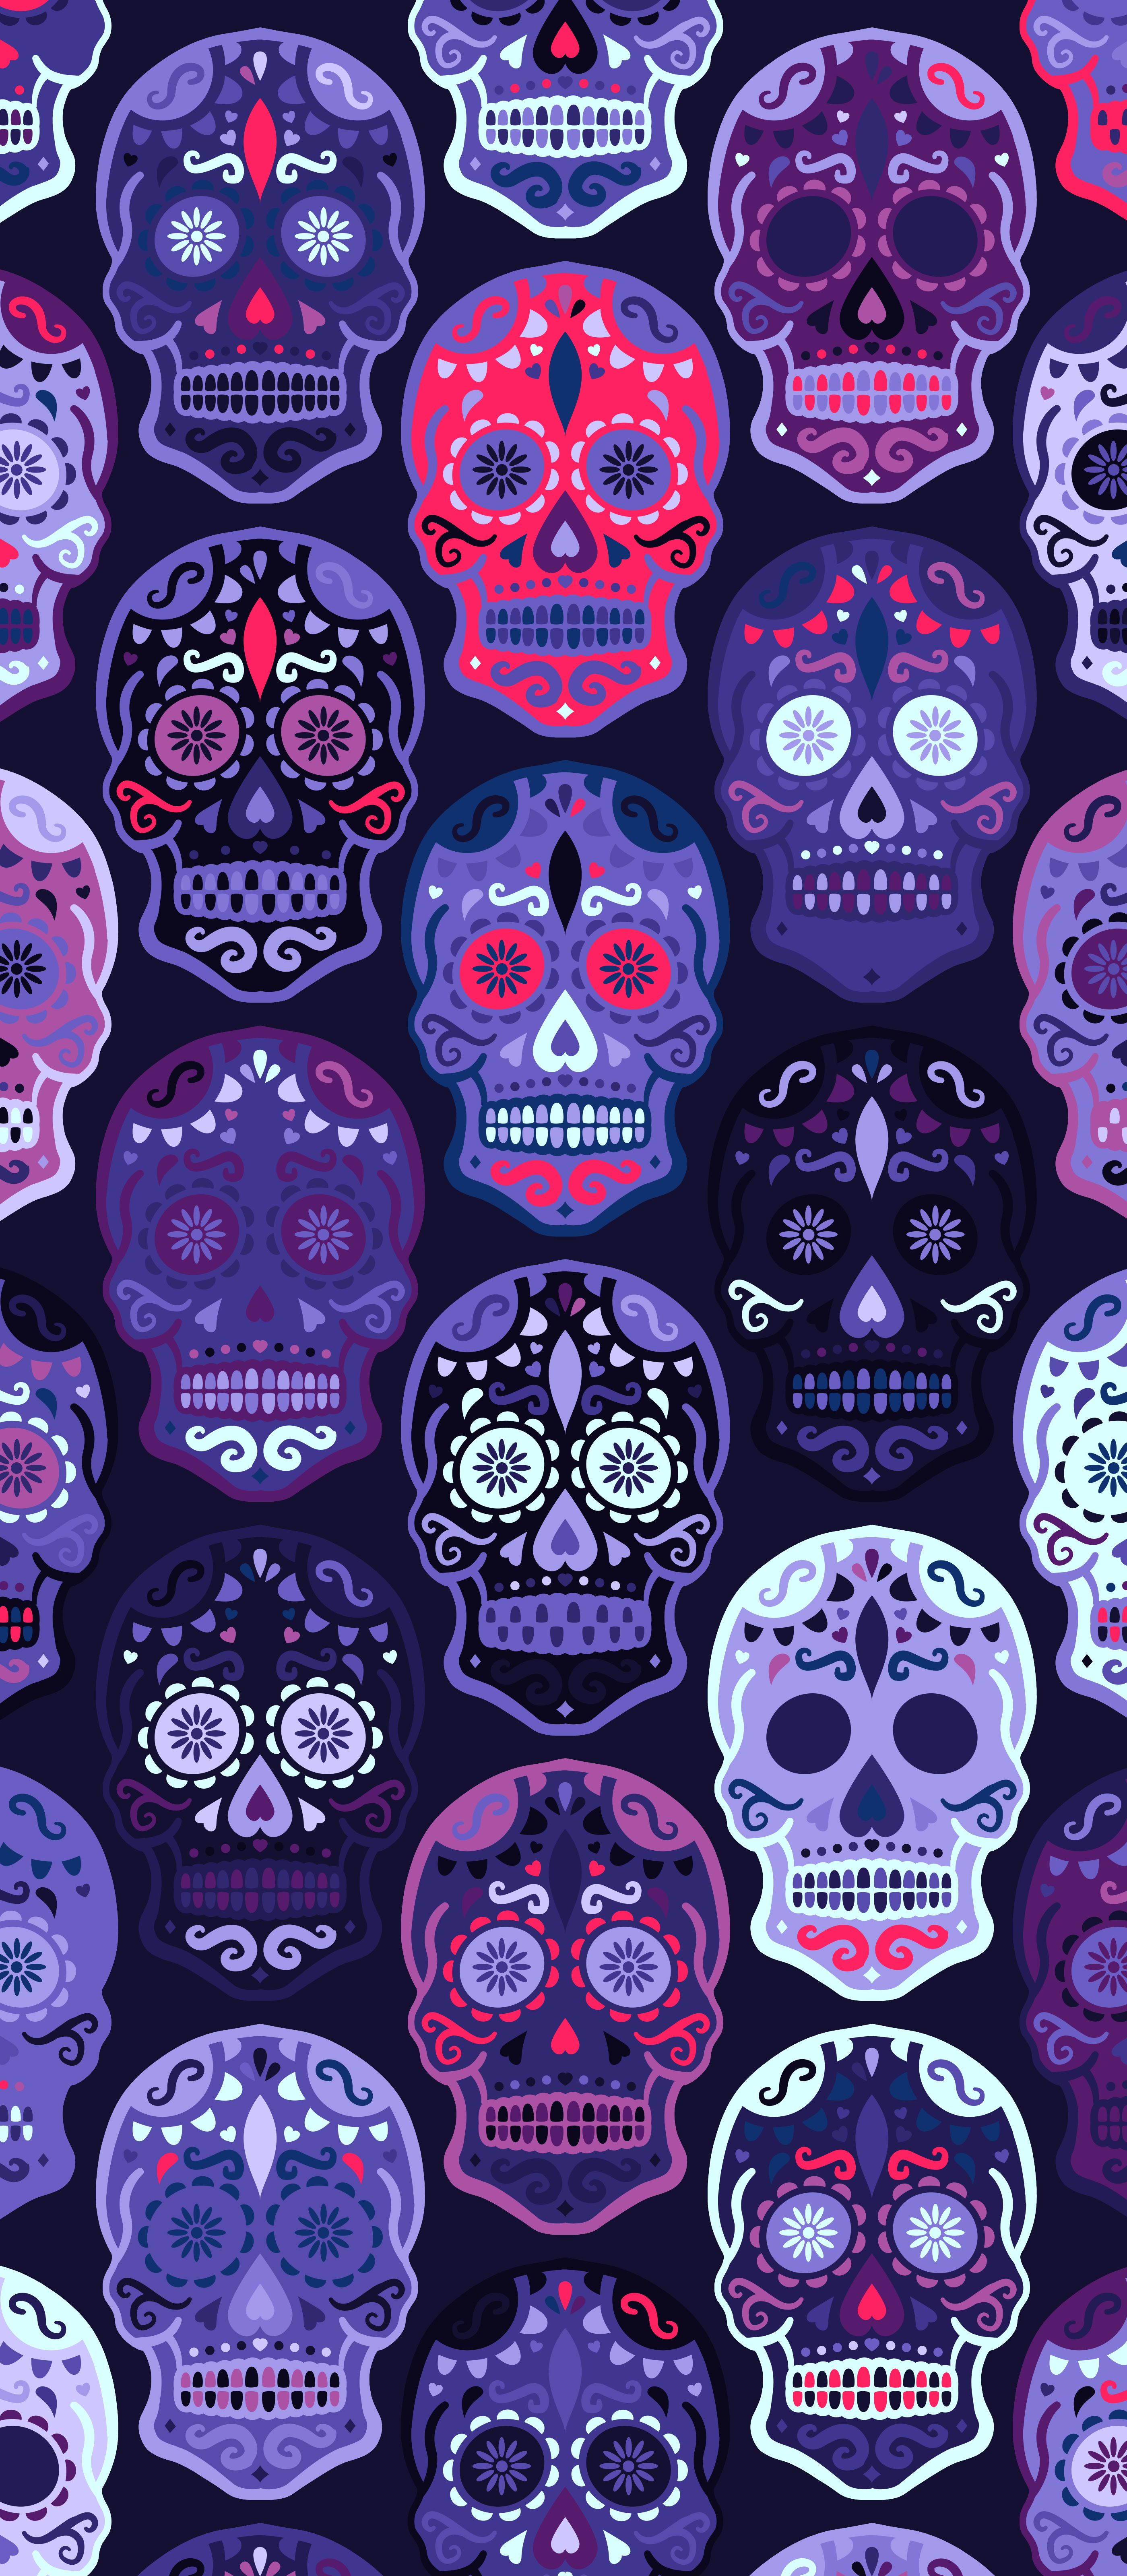 Russfussuk Dead Sweet Skull Pattern M2A #pattern #patterndesign #patternprint #sugar #skull #sugarskulls #dayofthedead #diadelosmuertos #cadernos #padrões